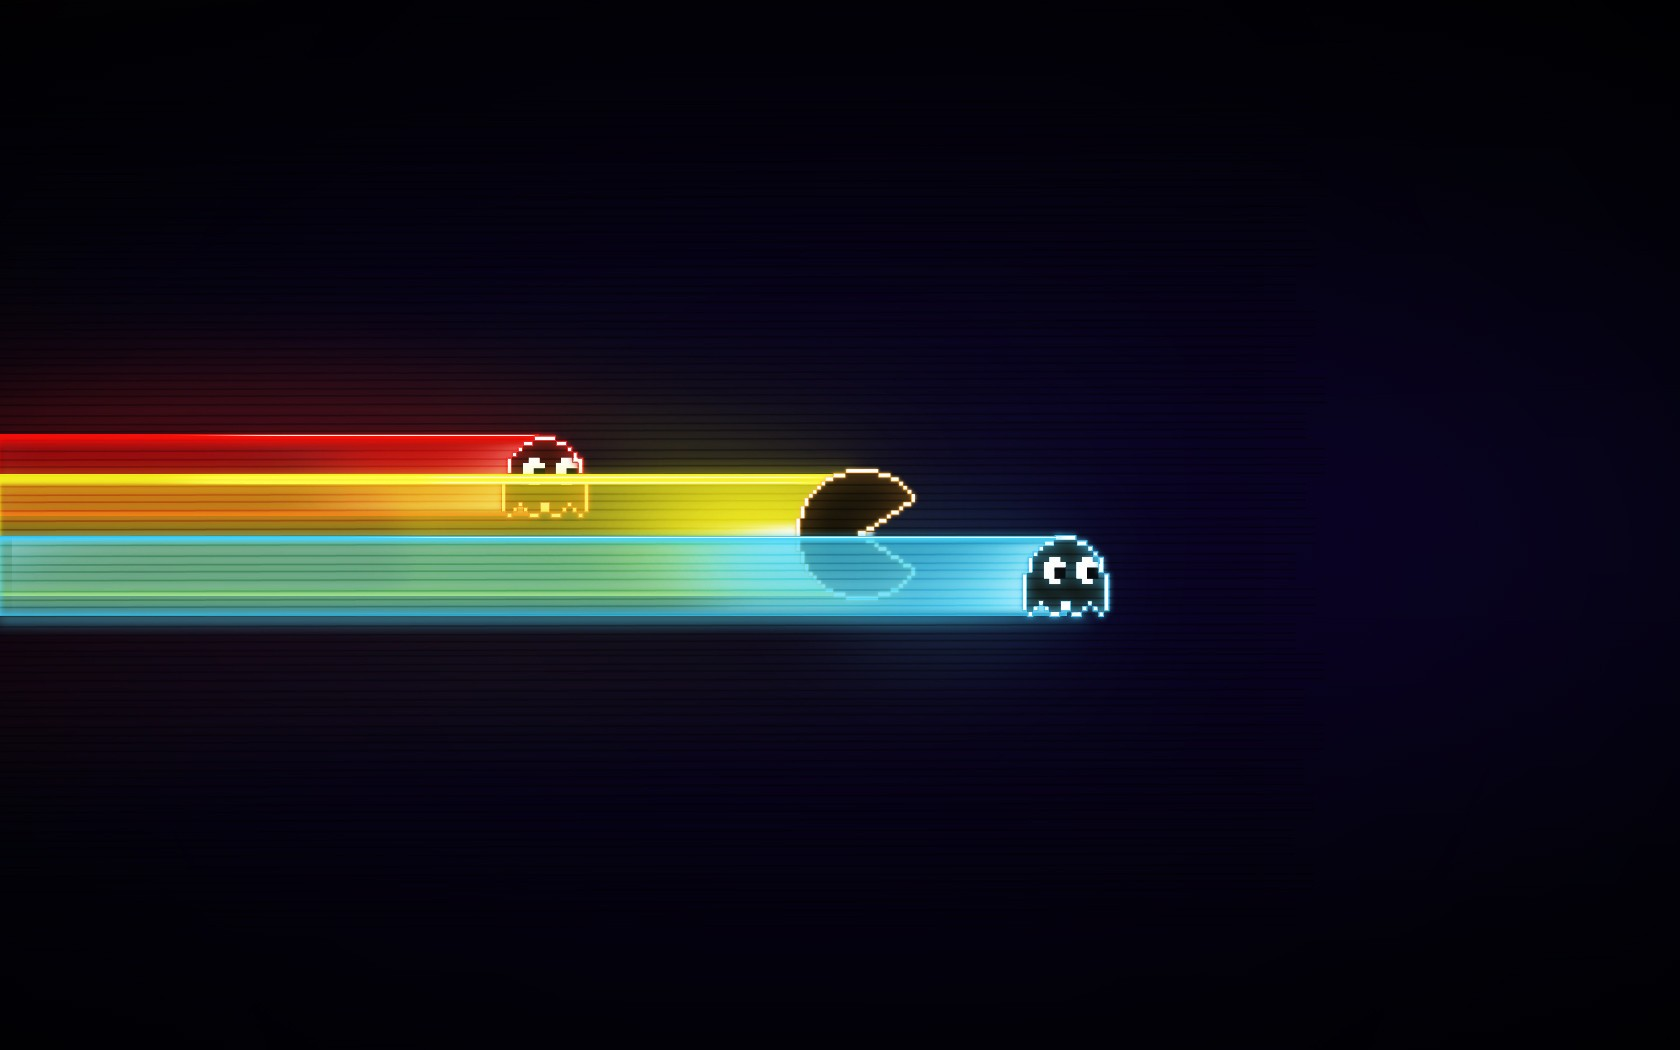 Hd Car Wallpapers Wallpaper Simple Background Night Retro Games Pacman